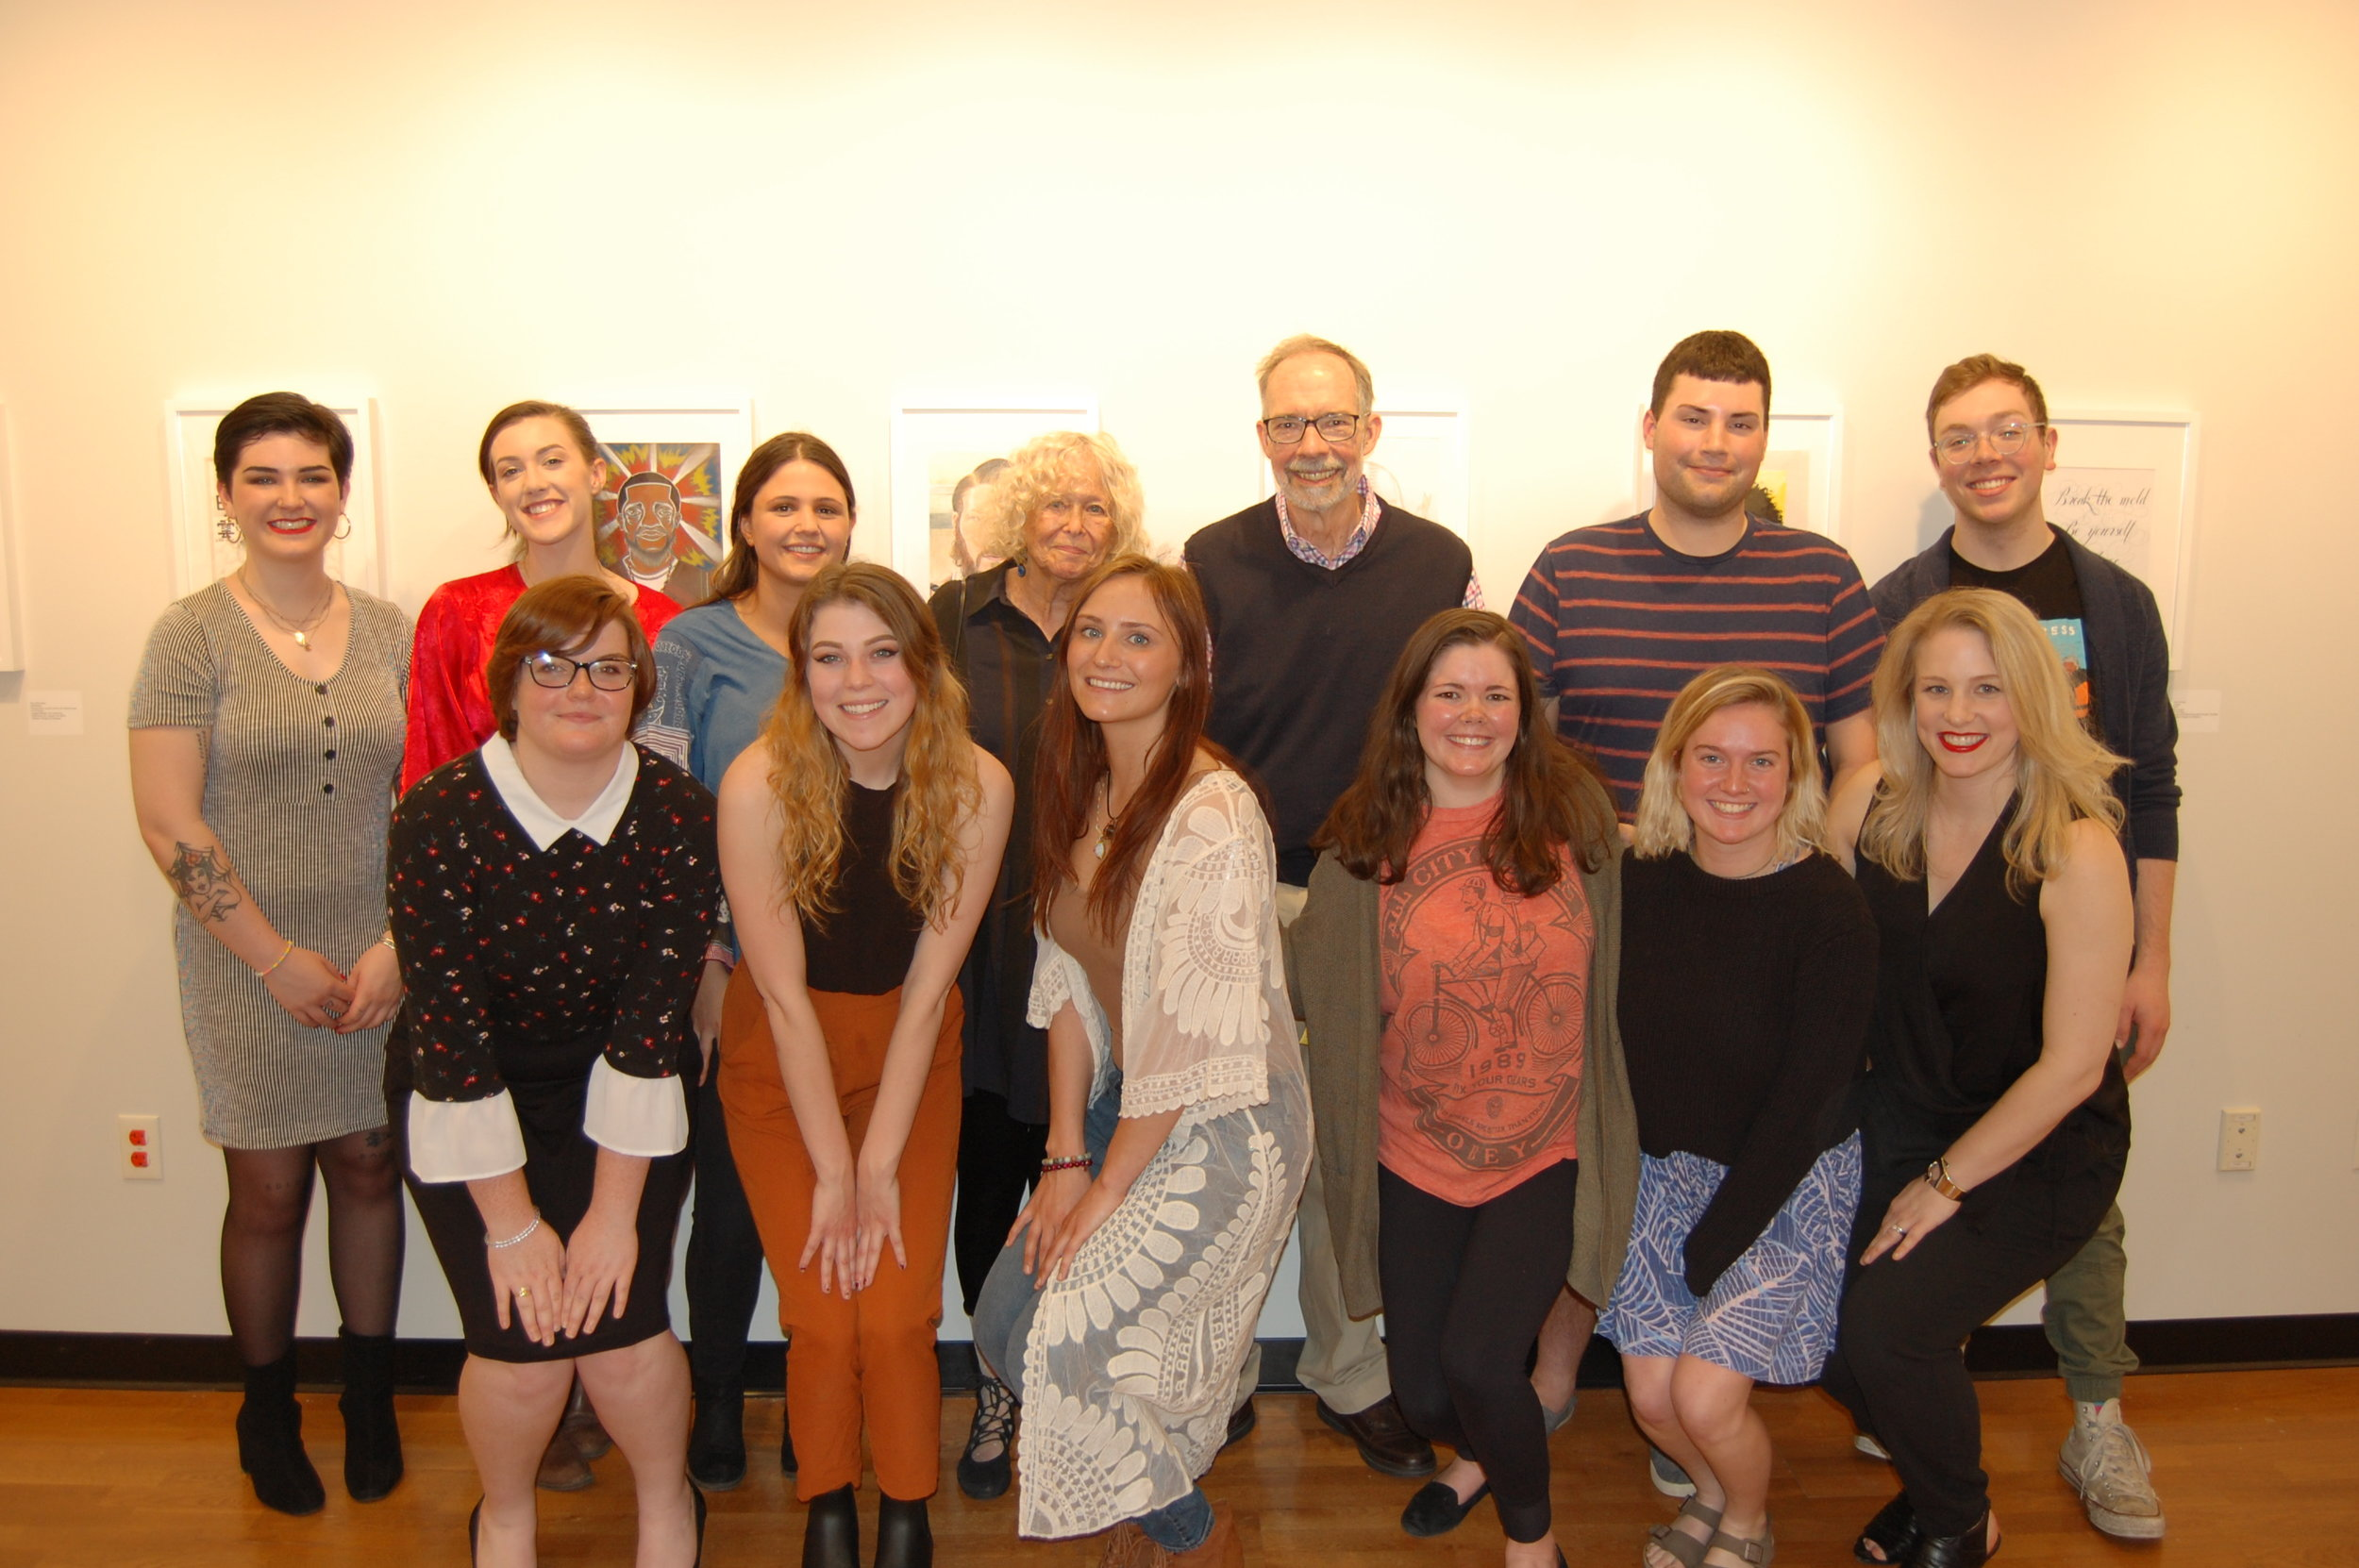 The entire team poses at the opening with Art History Emeritus Professors and project namesakes Dick Hunnewell and Naomi Kline (back row center).